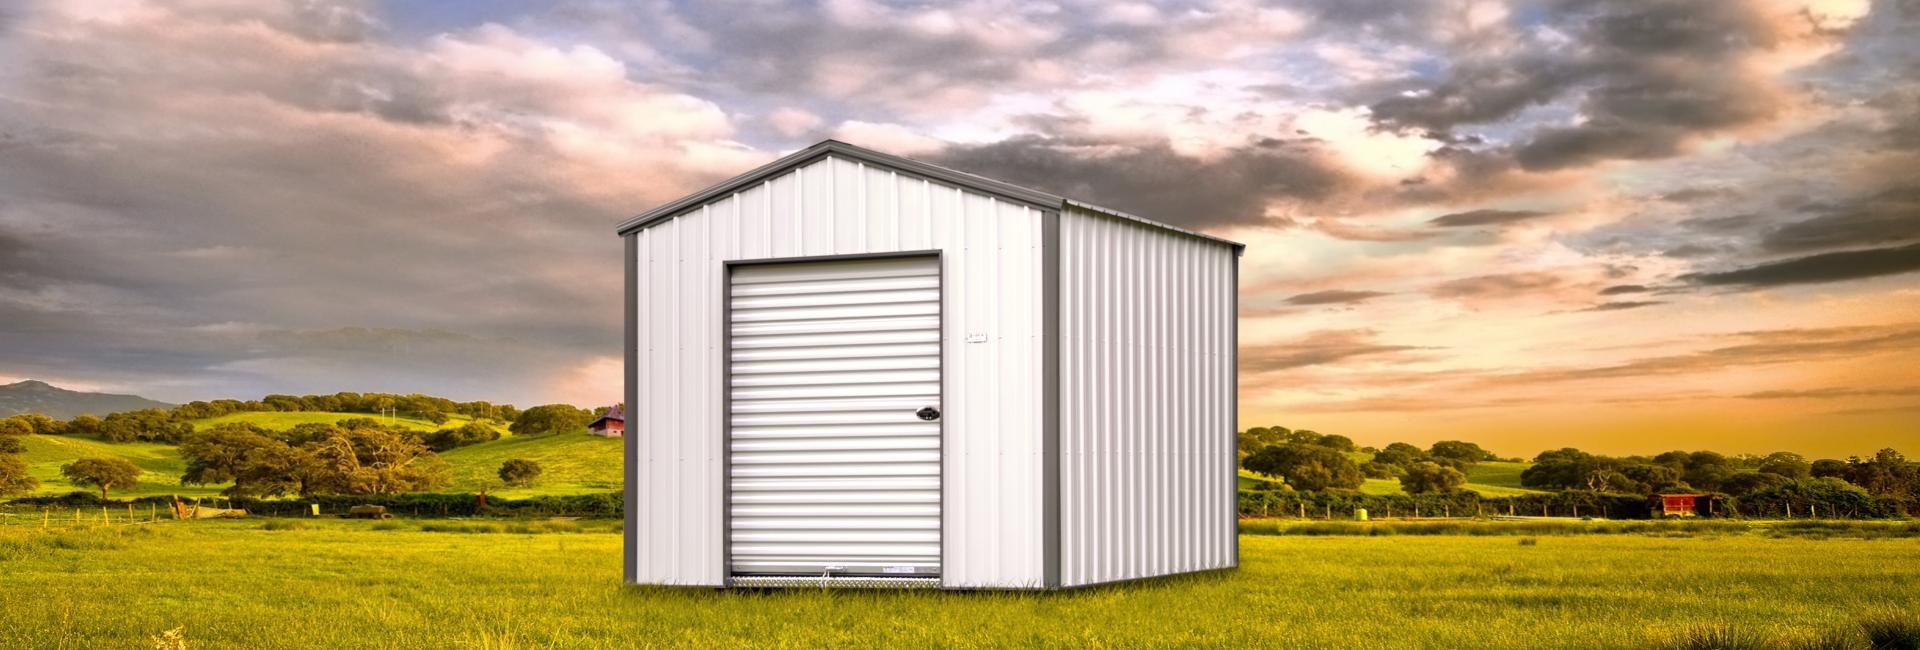 Portable economy storage shed featured in white with gray trim detail located in a green pasture at sunset